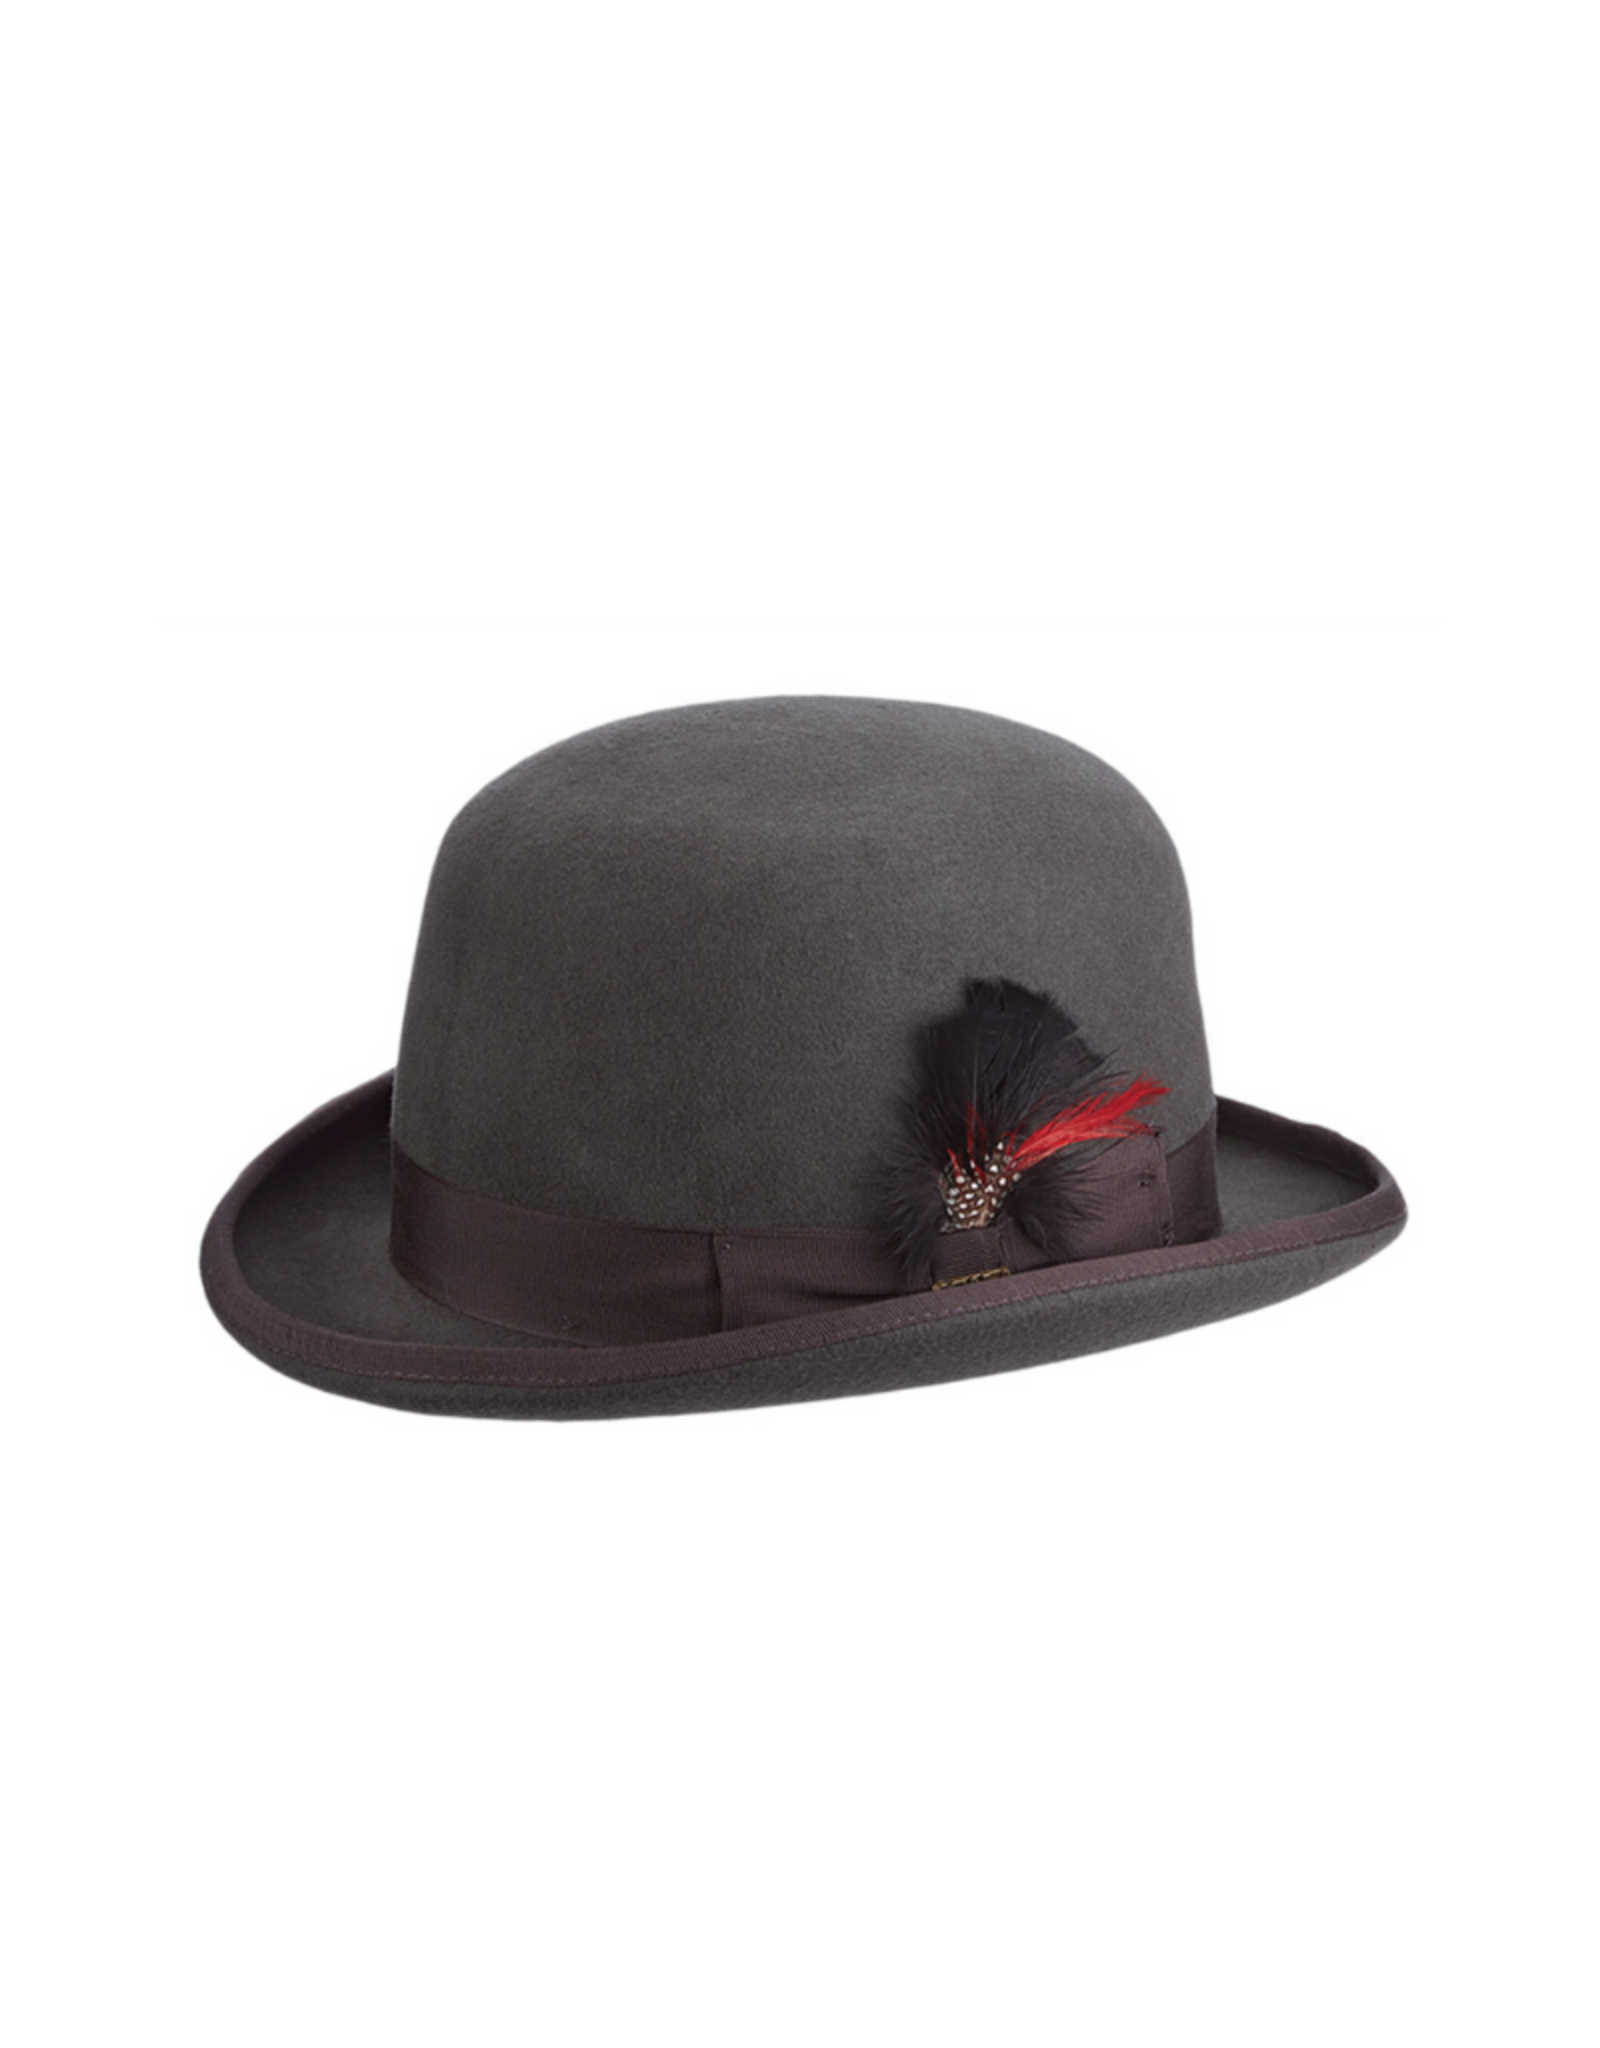 HAT-DERBY-FURLONG